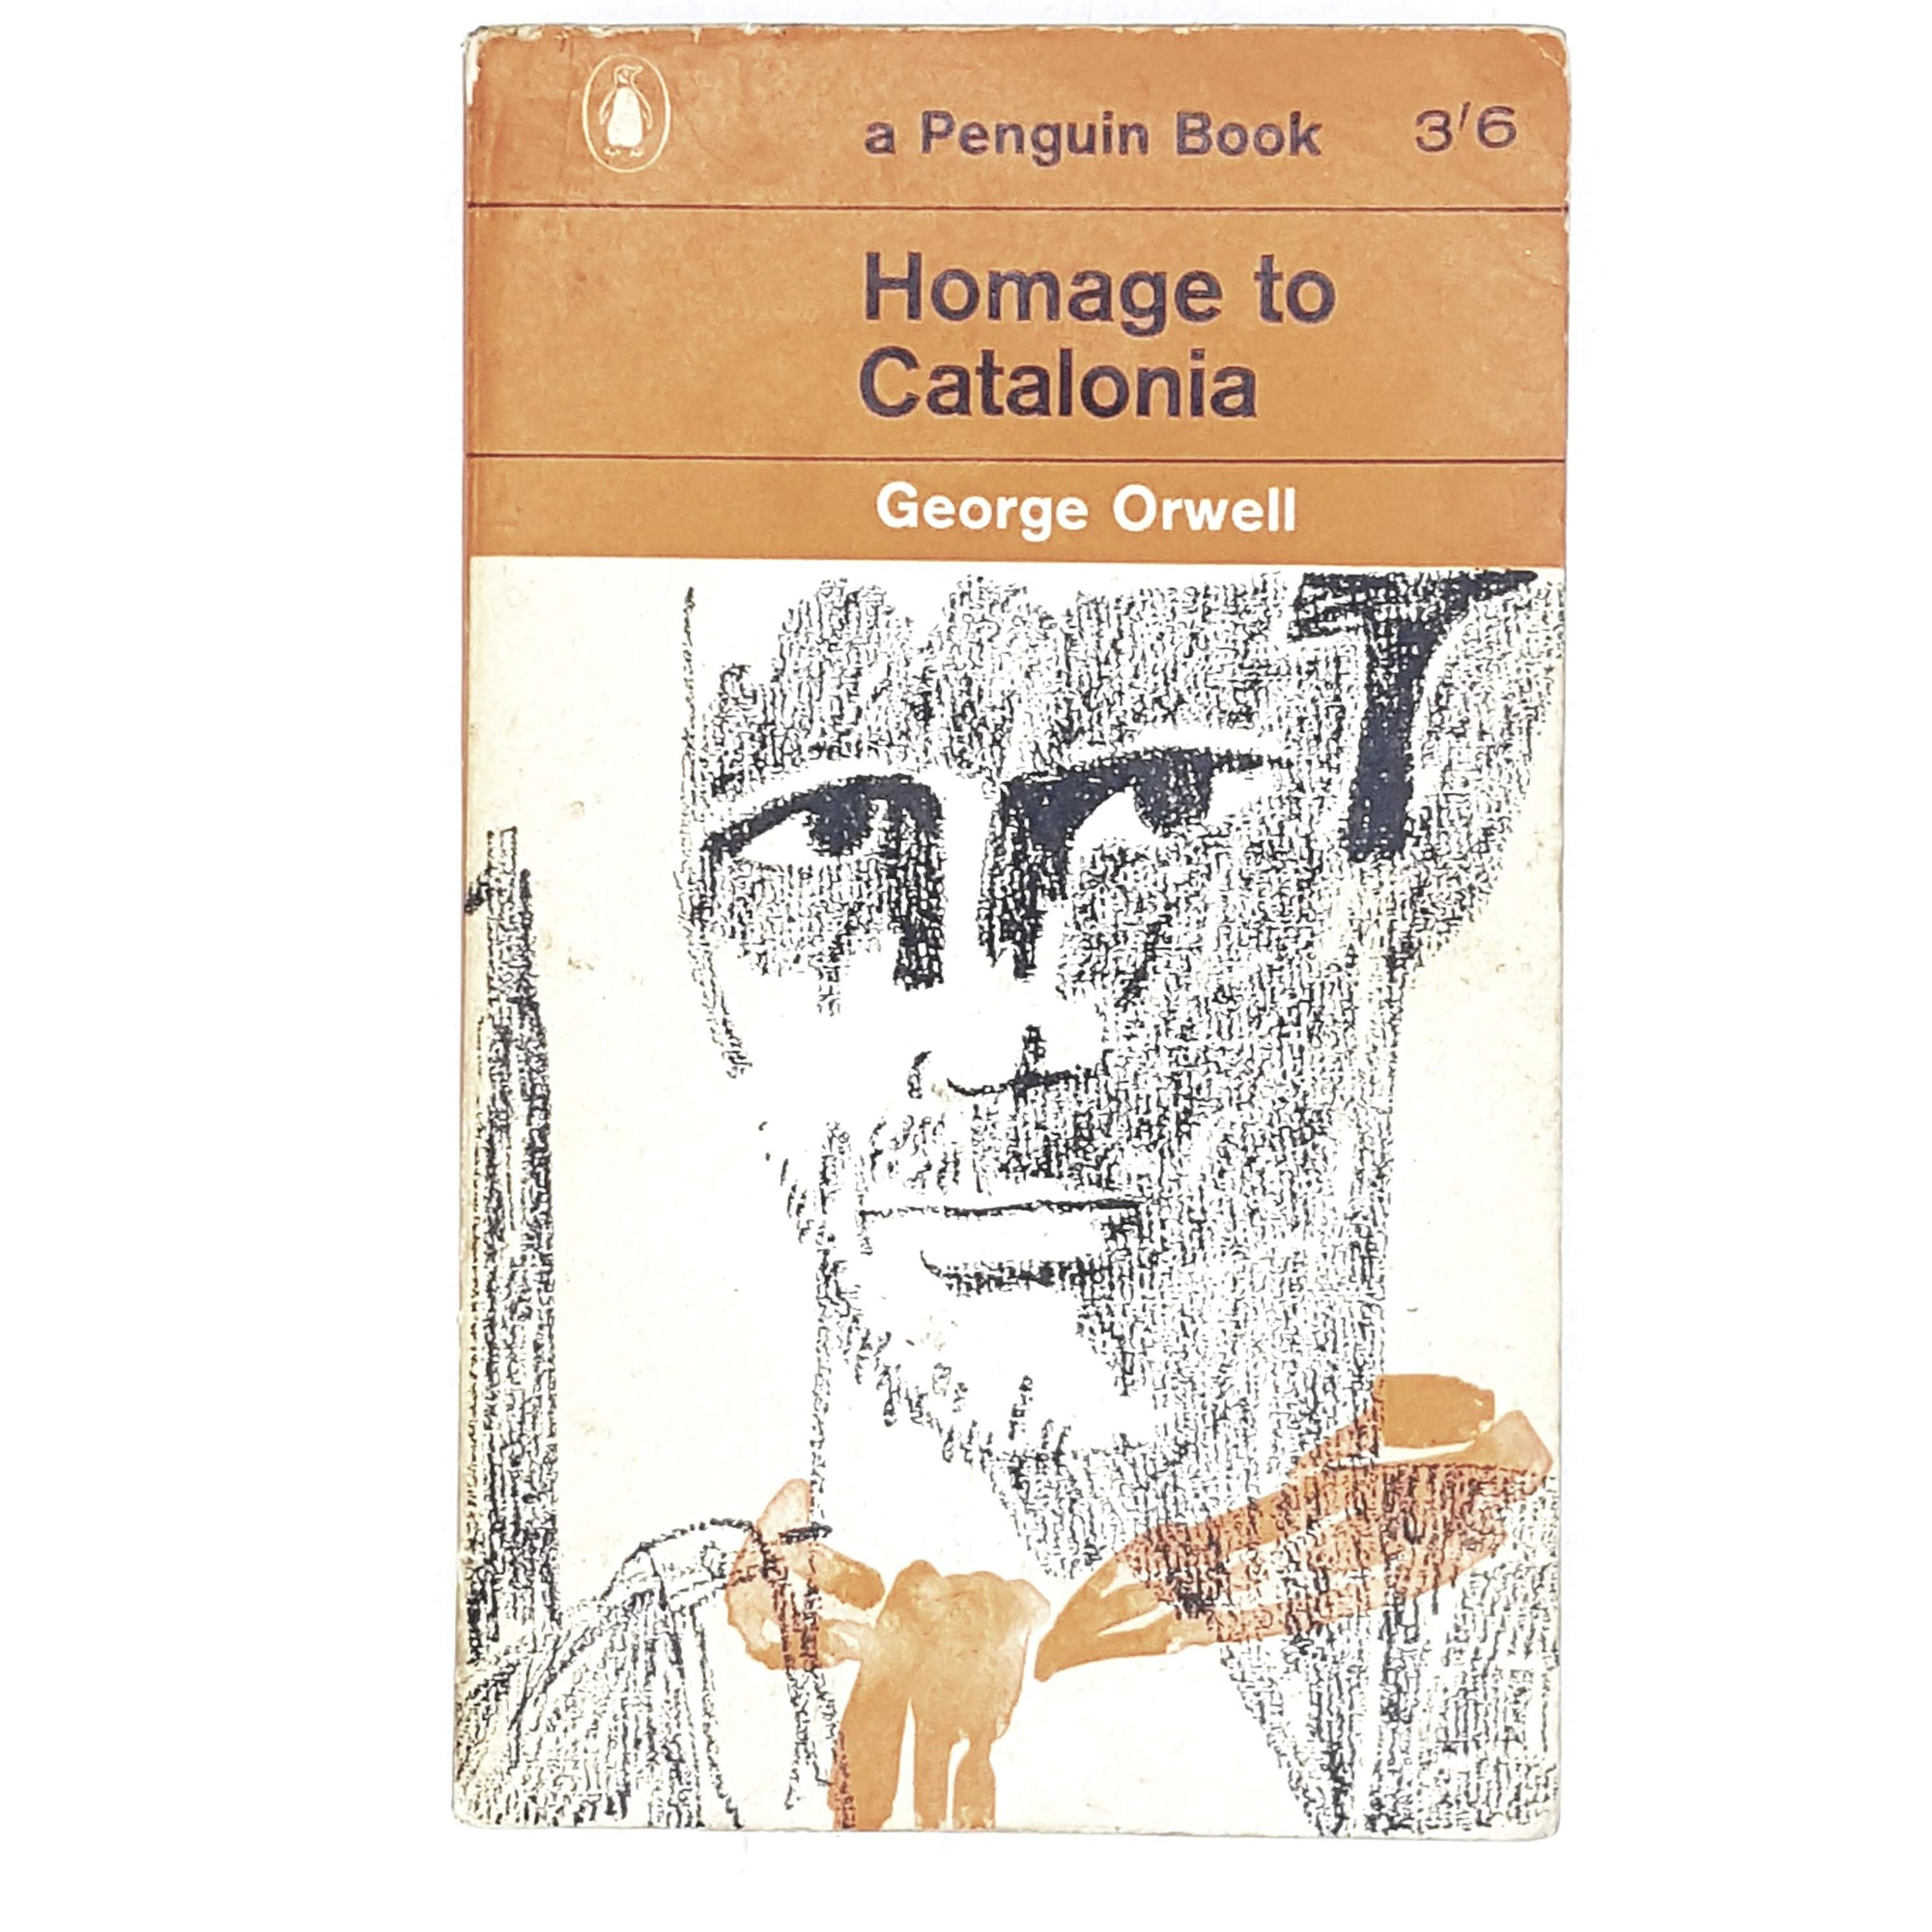 George Orwell's Homage to Catalonia 1964